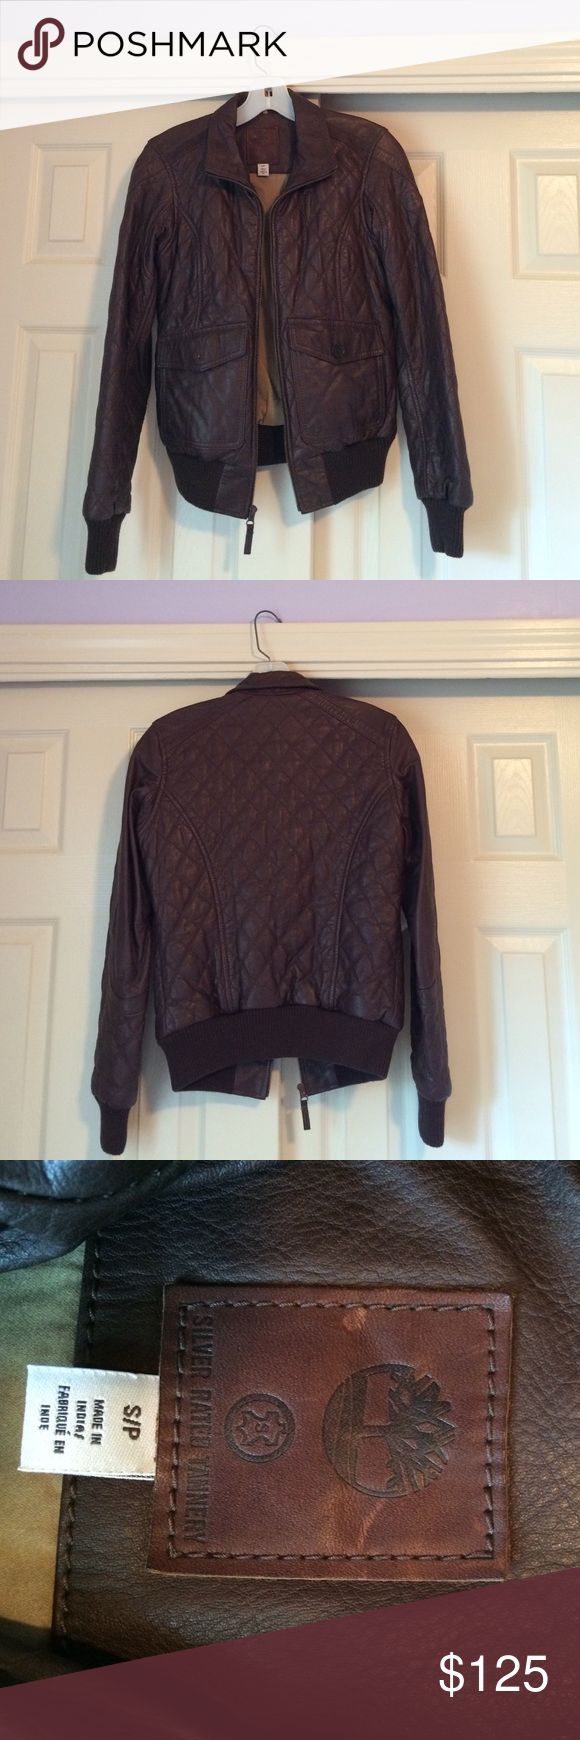 Timberland Leather Jacket Gorgeous brown quilted leather jacket. Bomber-style. Size small. New without tags, never worn. Timberland Jackets & Coats